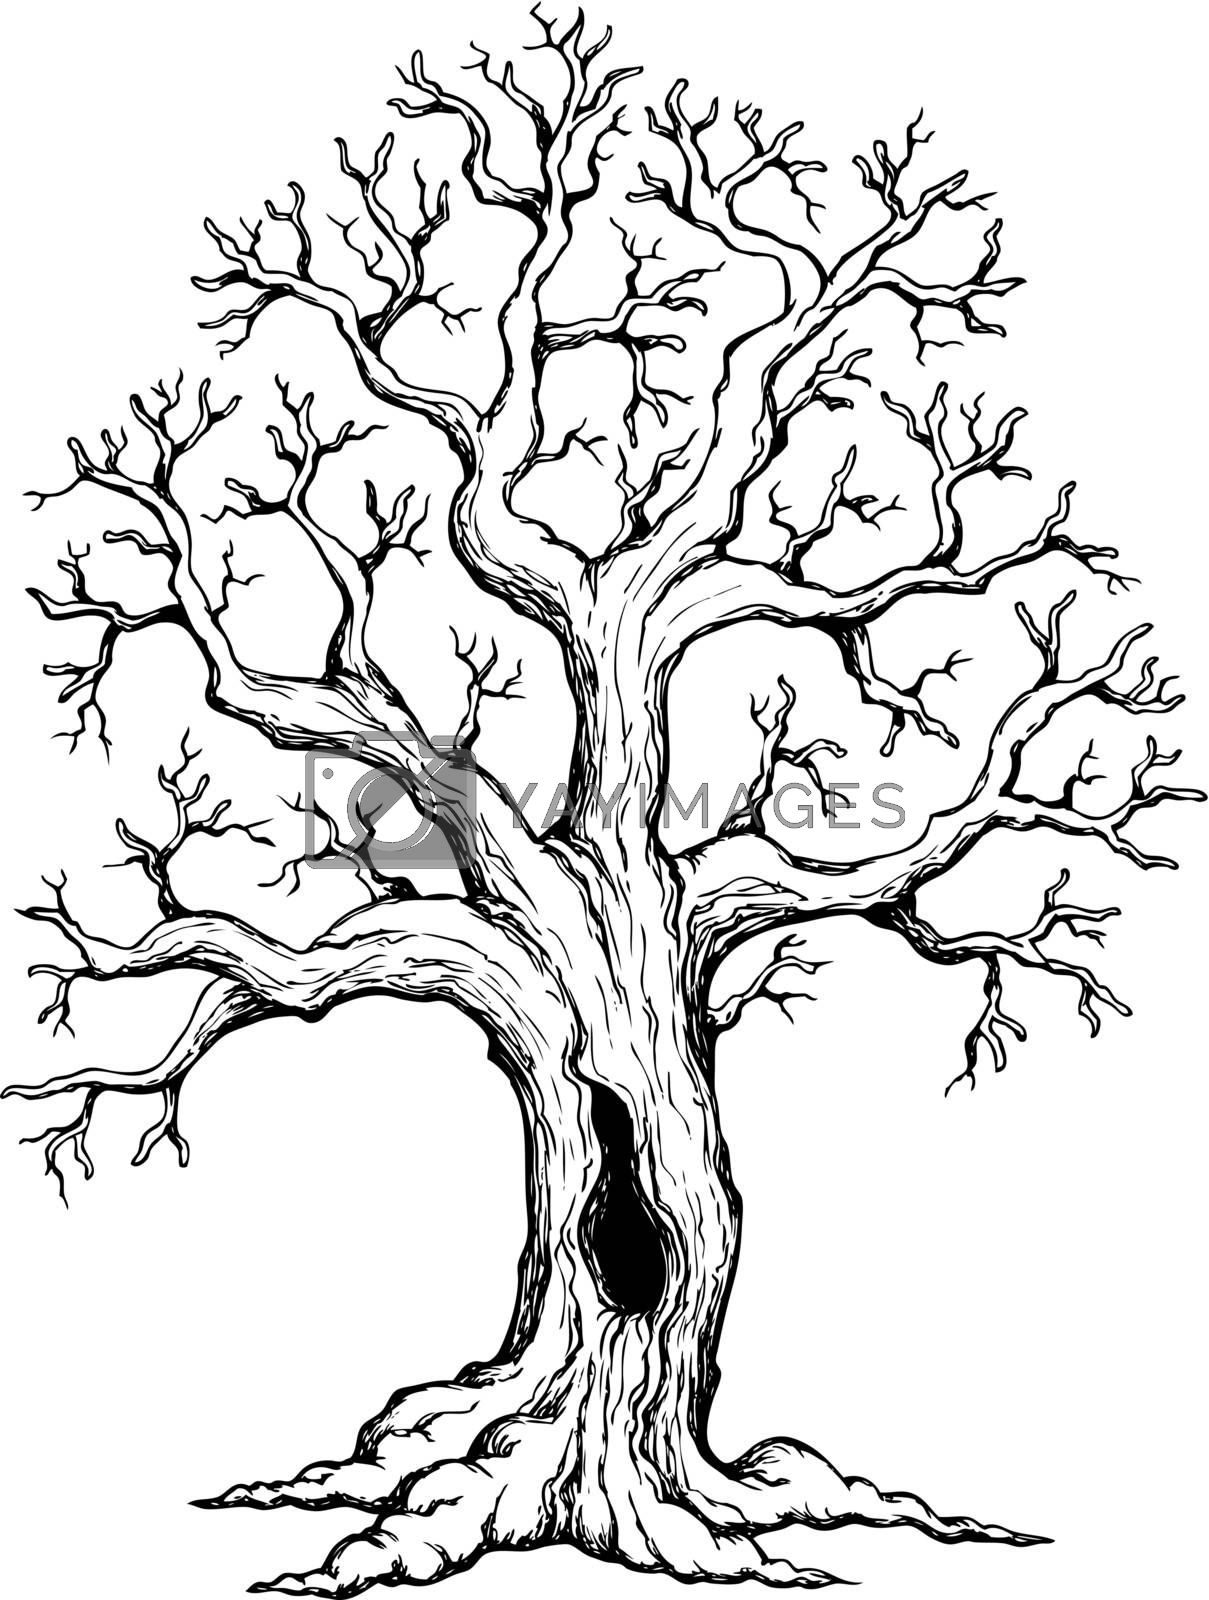 Tree theme drawing 1 by clairev